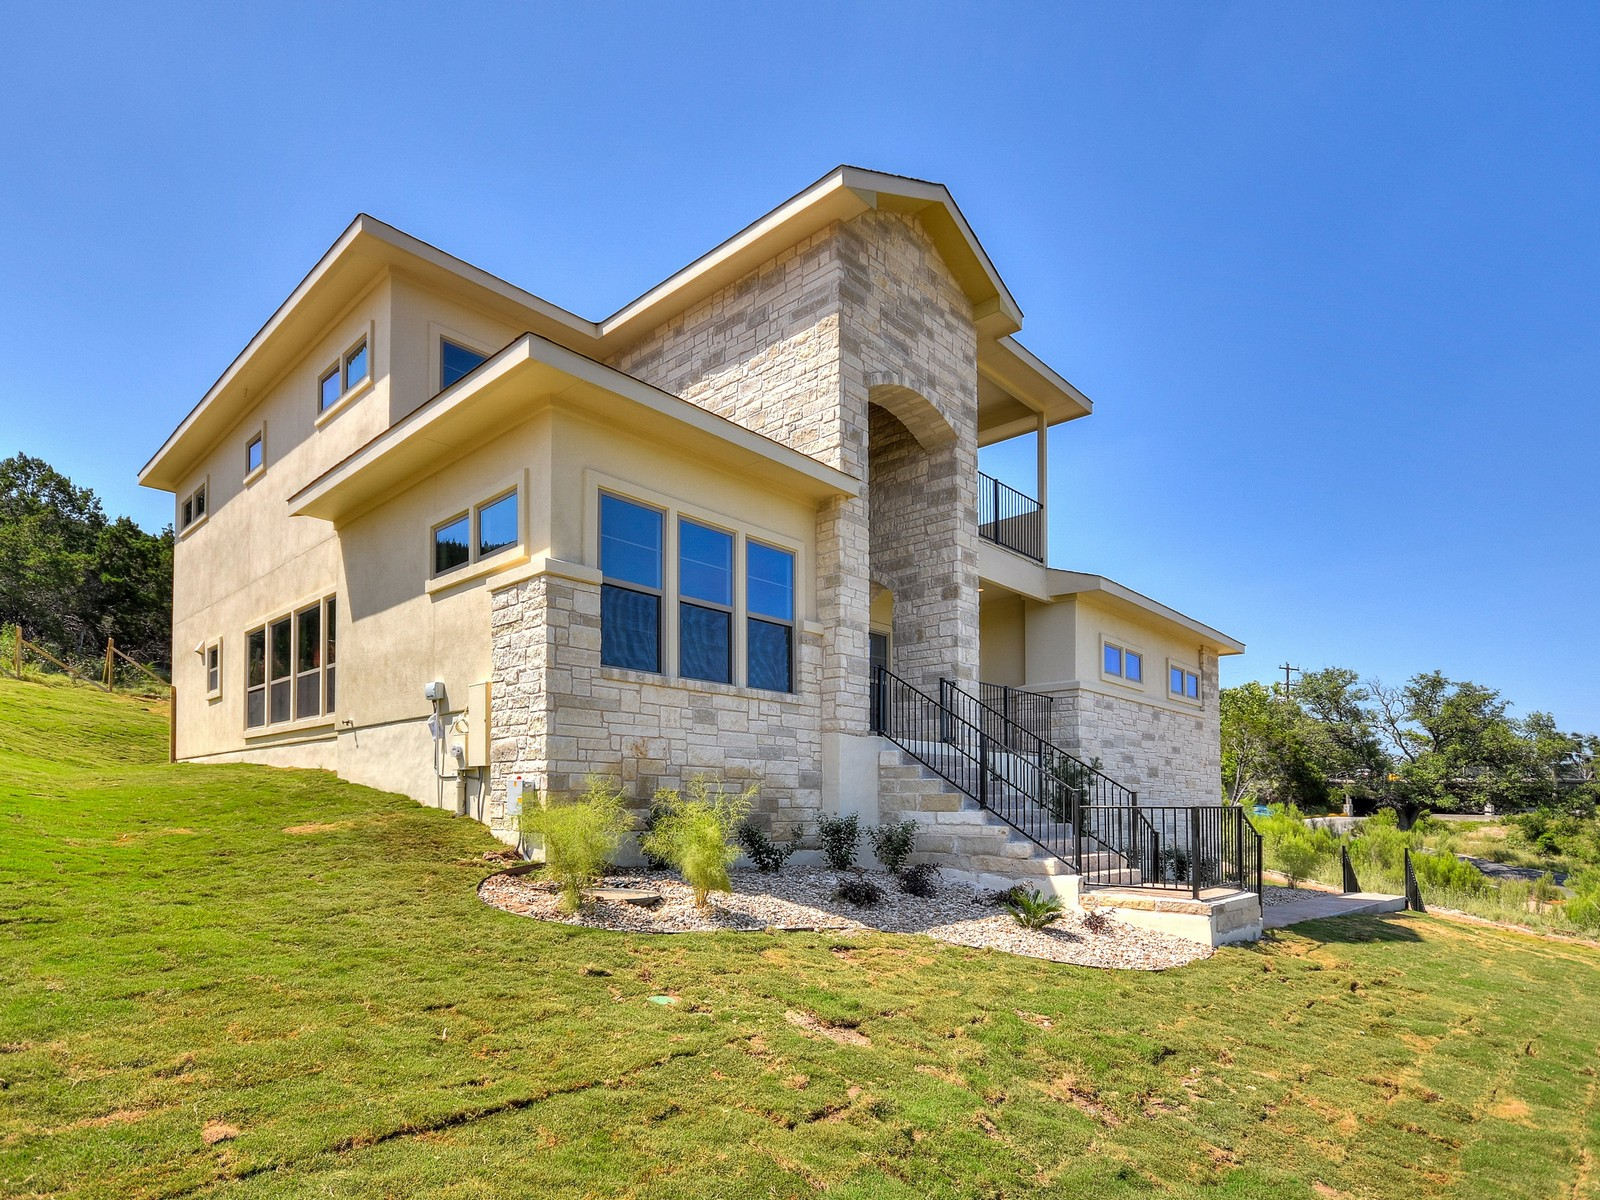 Single Family Home for Sale at Newly Constructed with Lake and Hill Country Views 113 Star St Lakeway, Texas, 78734 United States